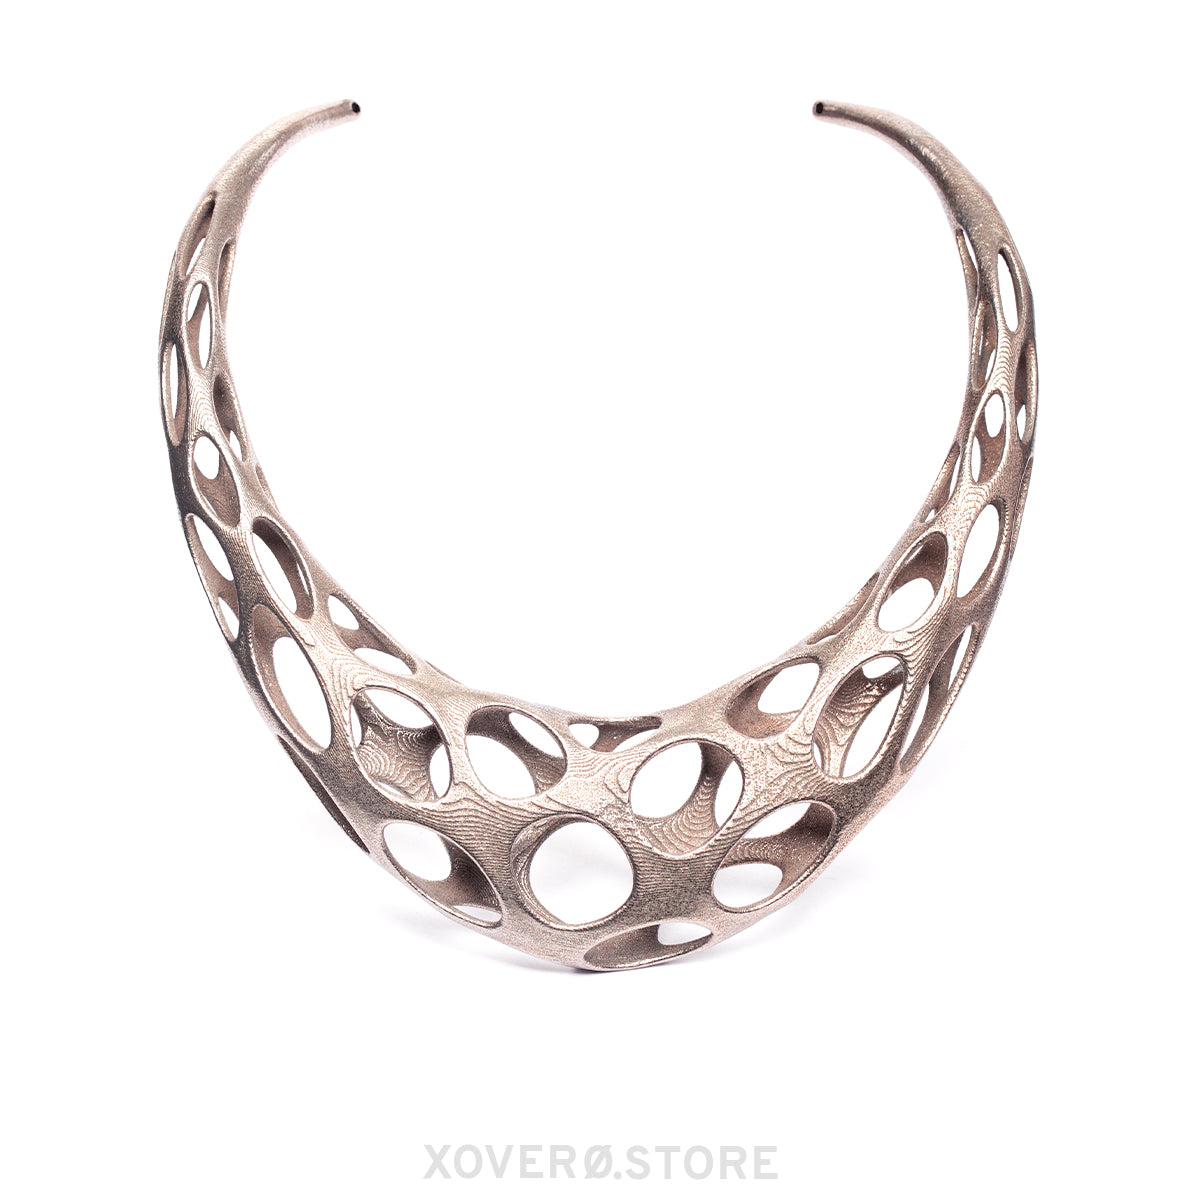 OBERON - 3d Printed Necklace - Steel